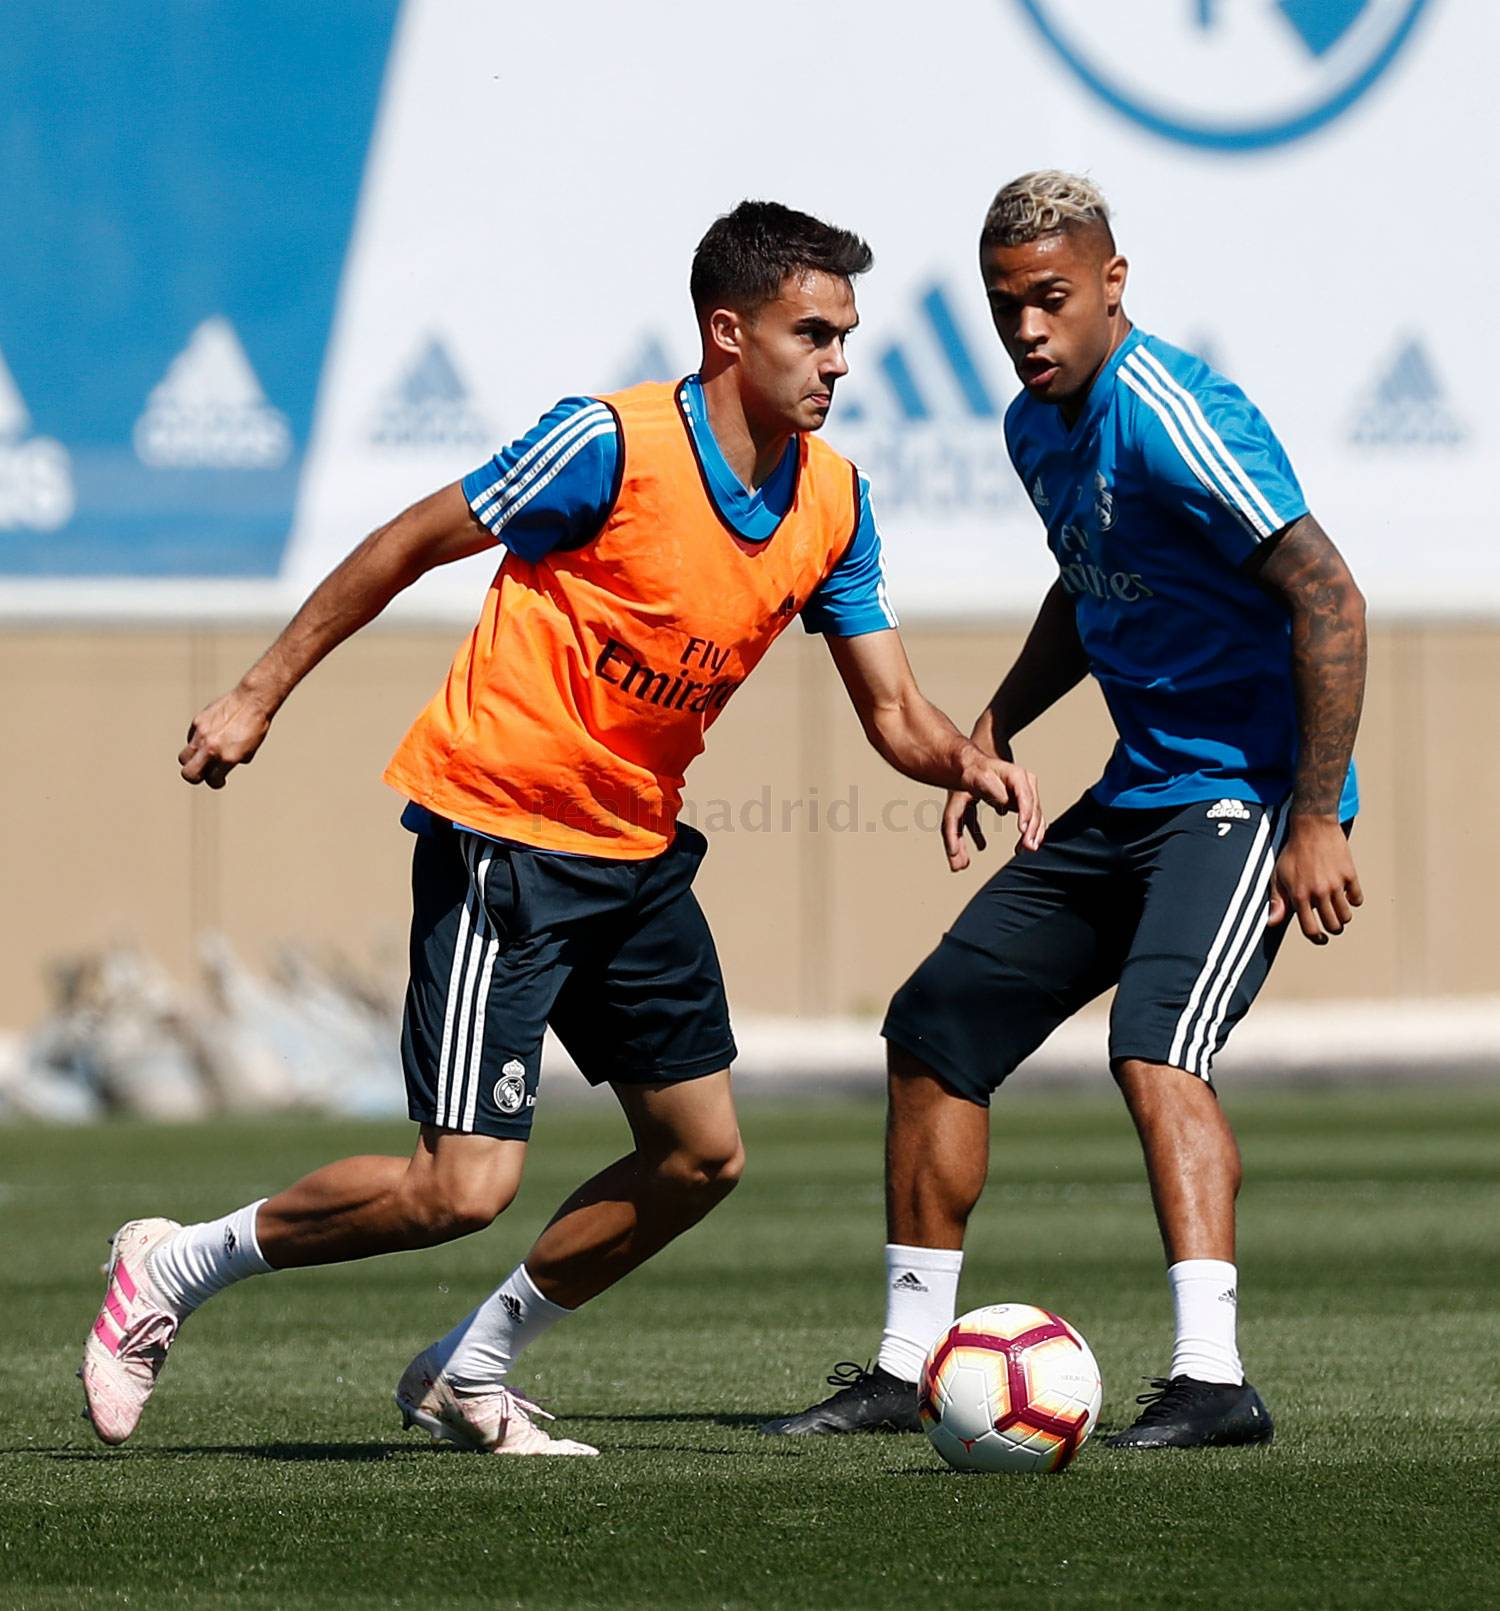 Real Madrid - Entrenamiento del Real Madrid - 16-05-2019